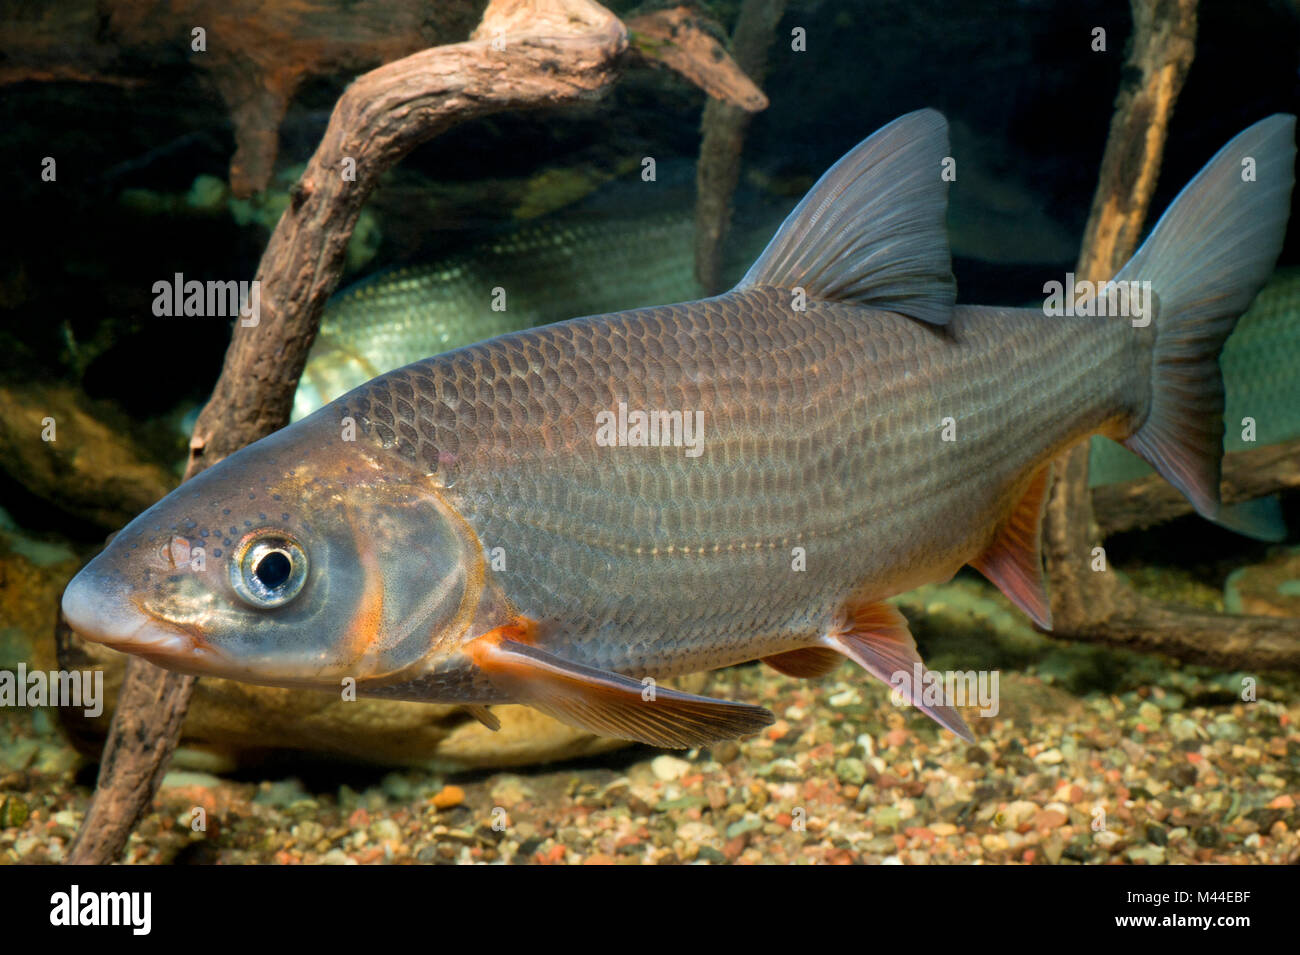 Common Nase (Chondrostoma nasus). Two adults under water. Germany Stock Photo